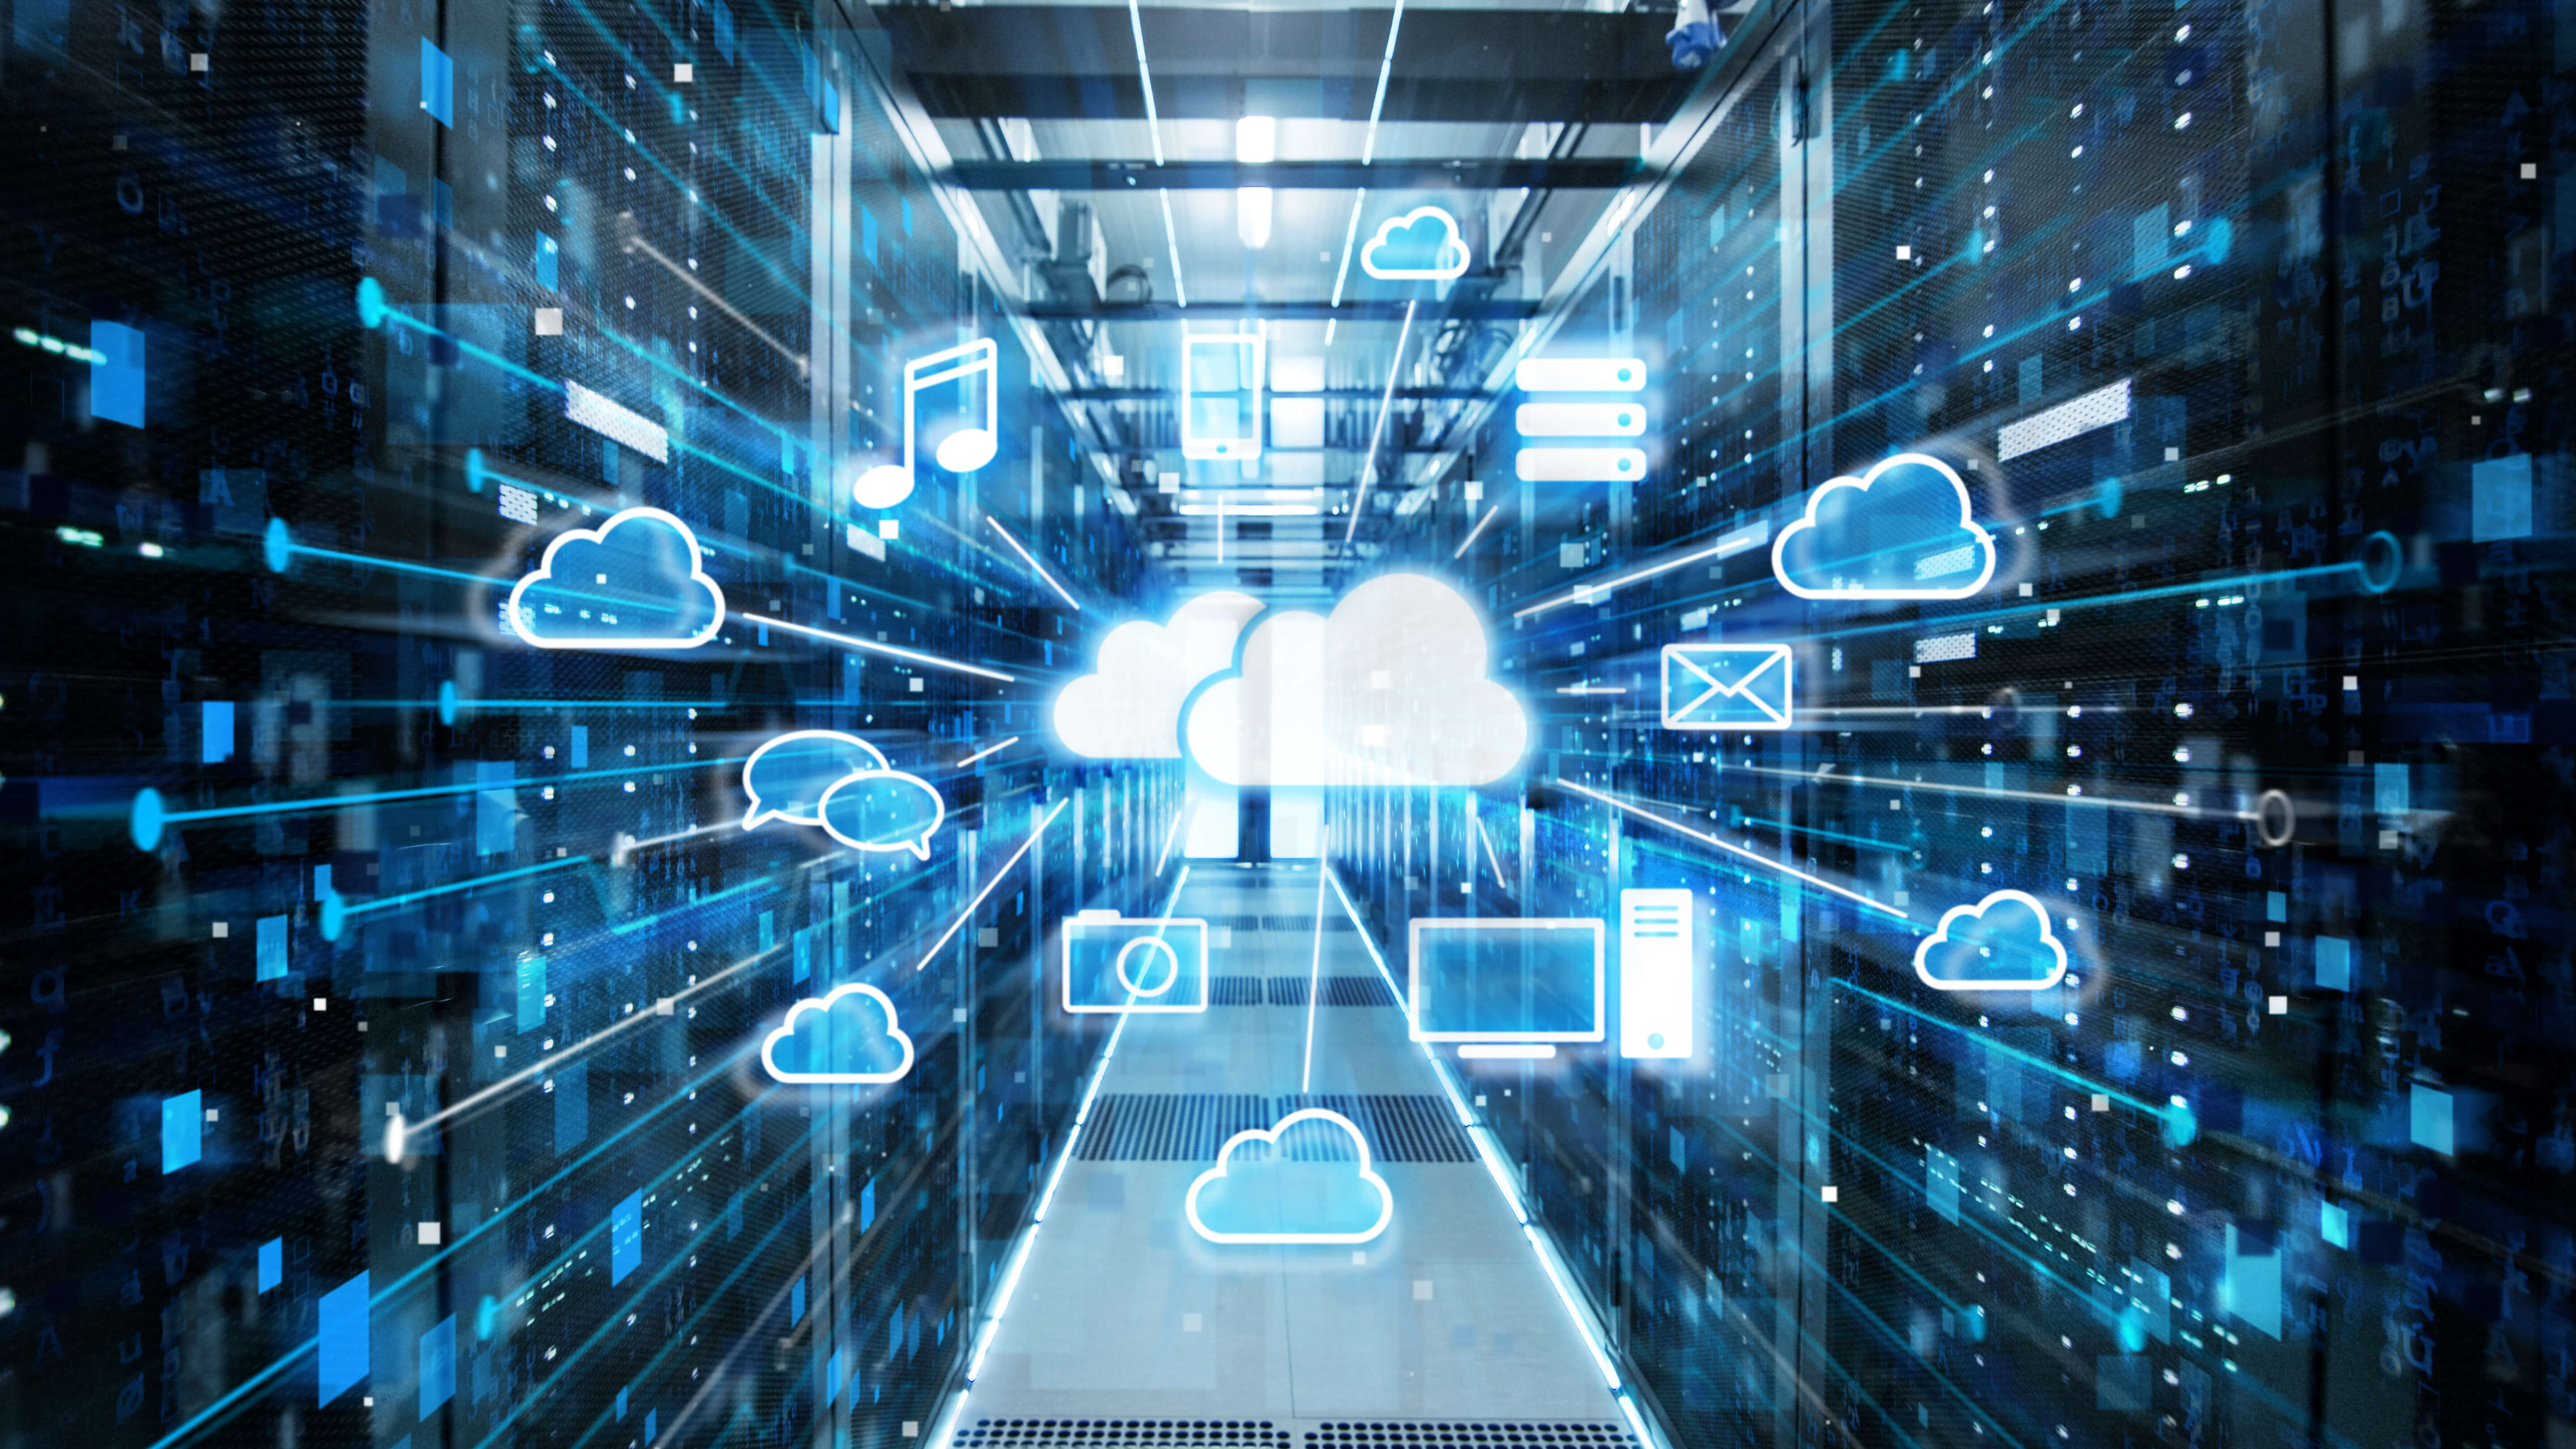 Cloud services provided from datacenter